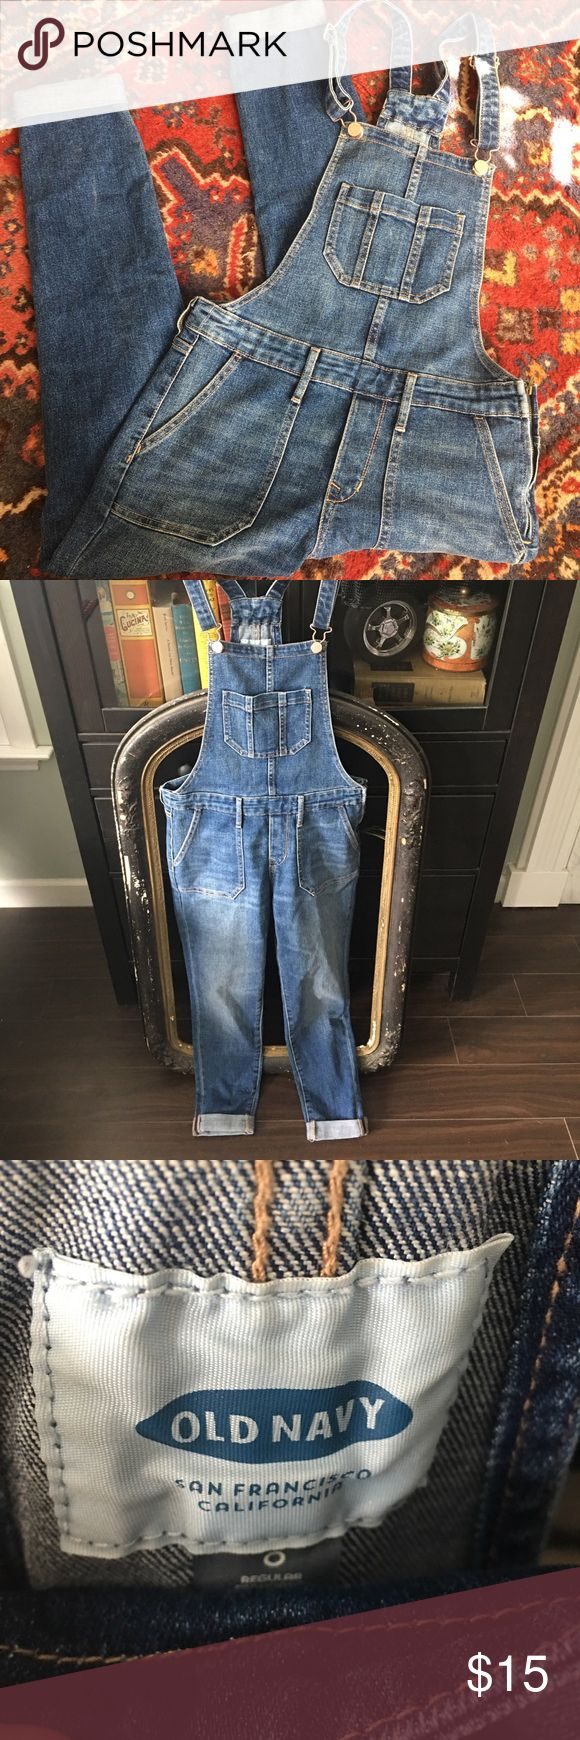 Old Navy overalls Great pair of denim overalls. Great for bebopping around in 😉 Old Navy Jeans Overalls